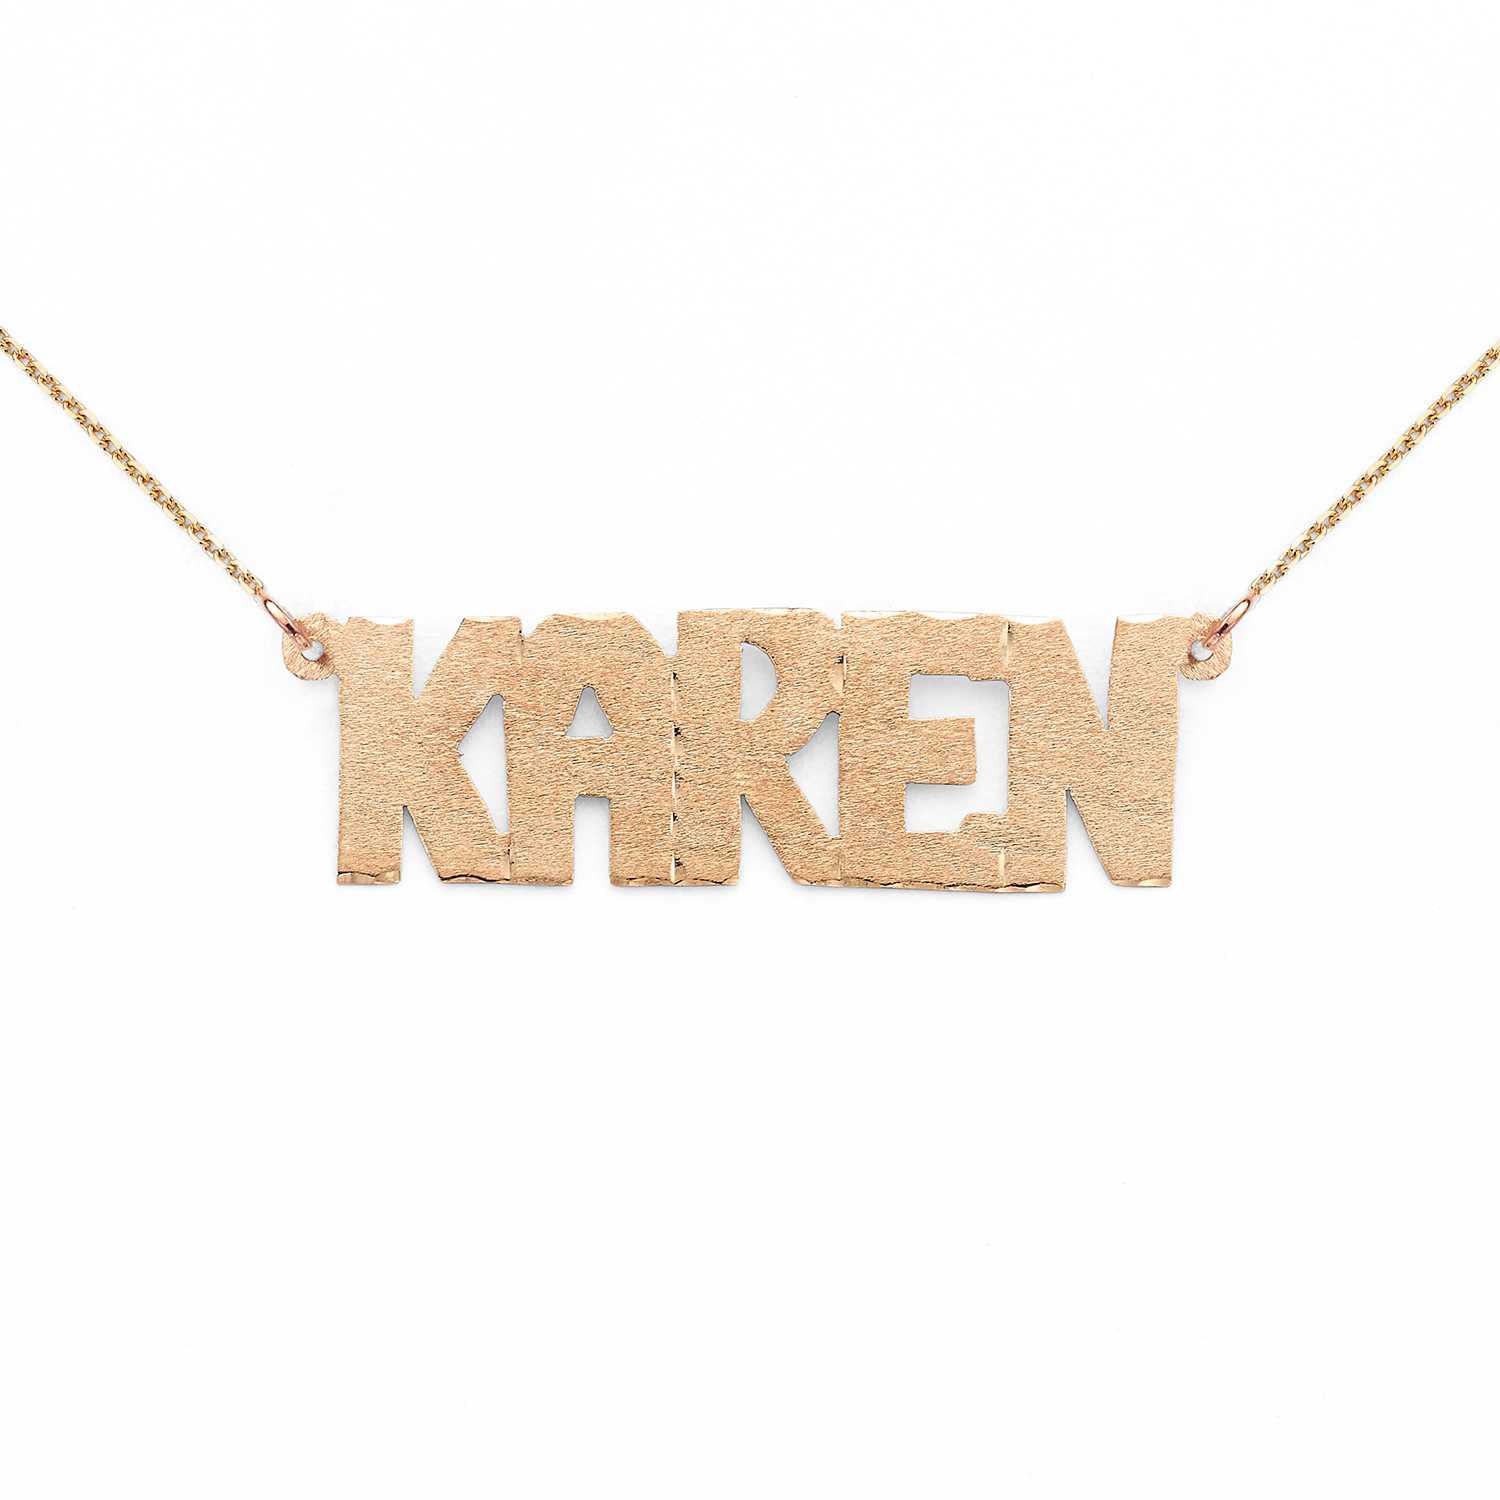 necklace product com name shopohmygod jewellery namenecklace